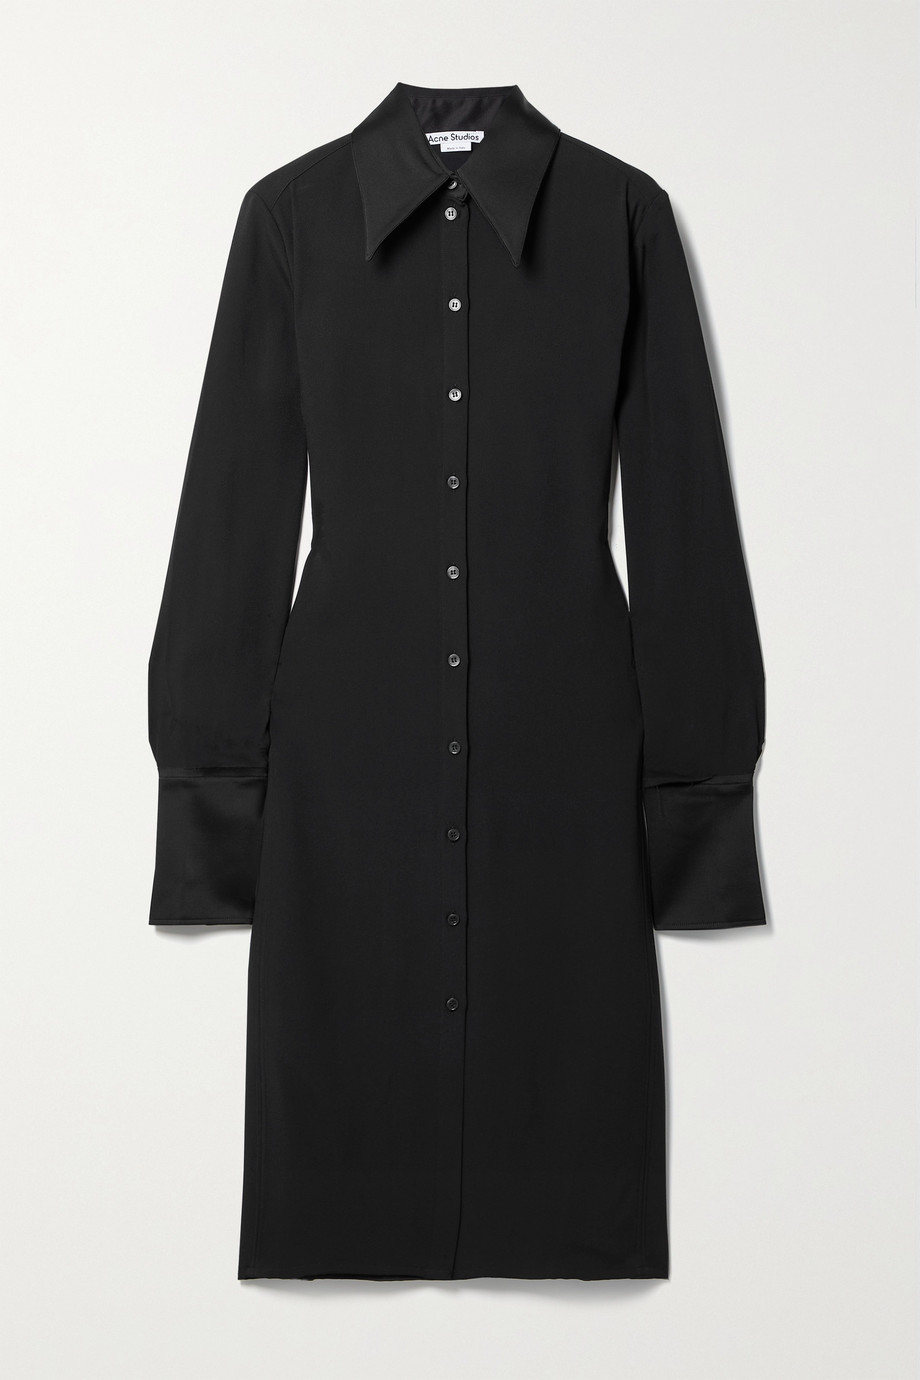 Acne Studios Satin-trimmed crepe shirt dress